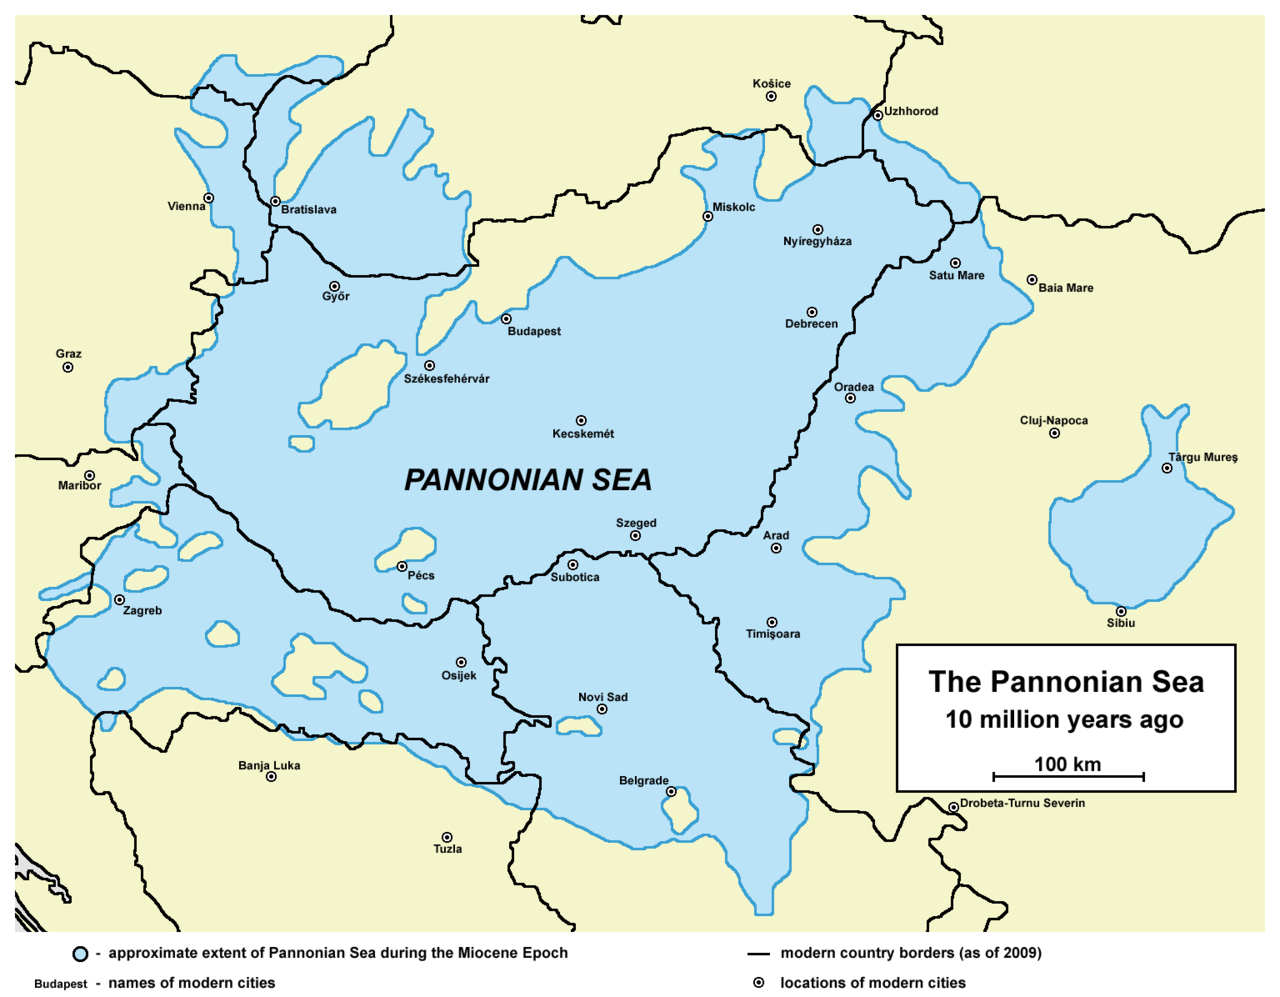 https://upload.wikimedia.org/wikipedia/commons/thumb/d/d1/Pannoniansea_currentborders.png/1280px-Pannoniansea_currentborders.png